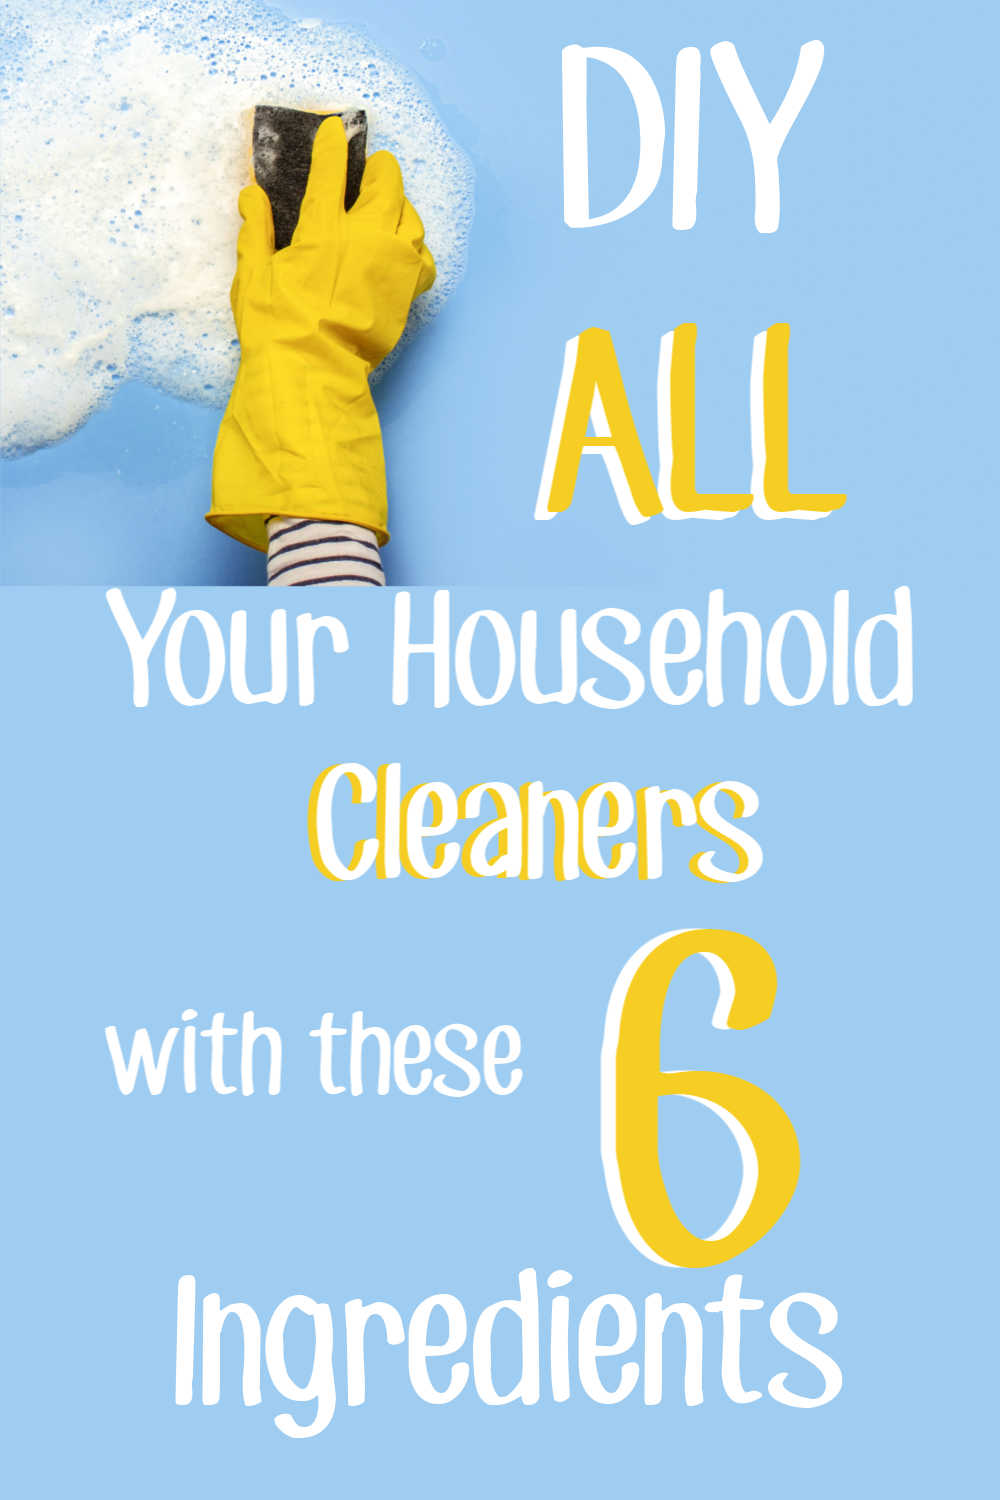 DIY All Your Toiletries and Cleaners with SIX Ingredients